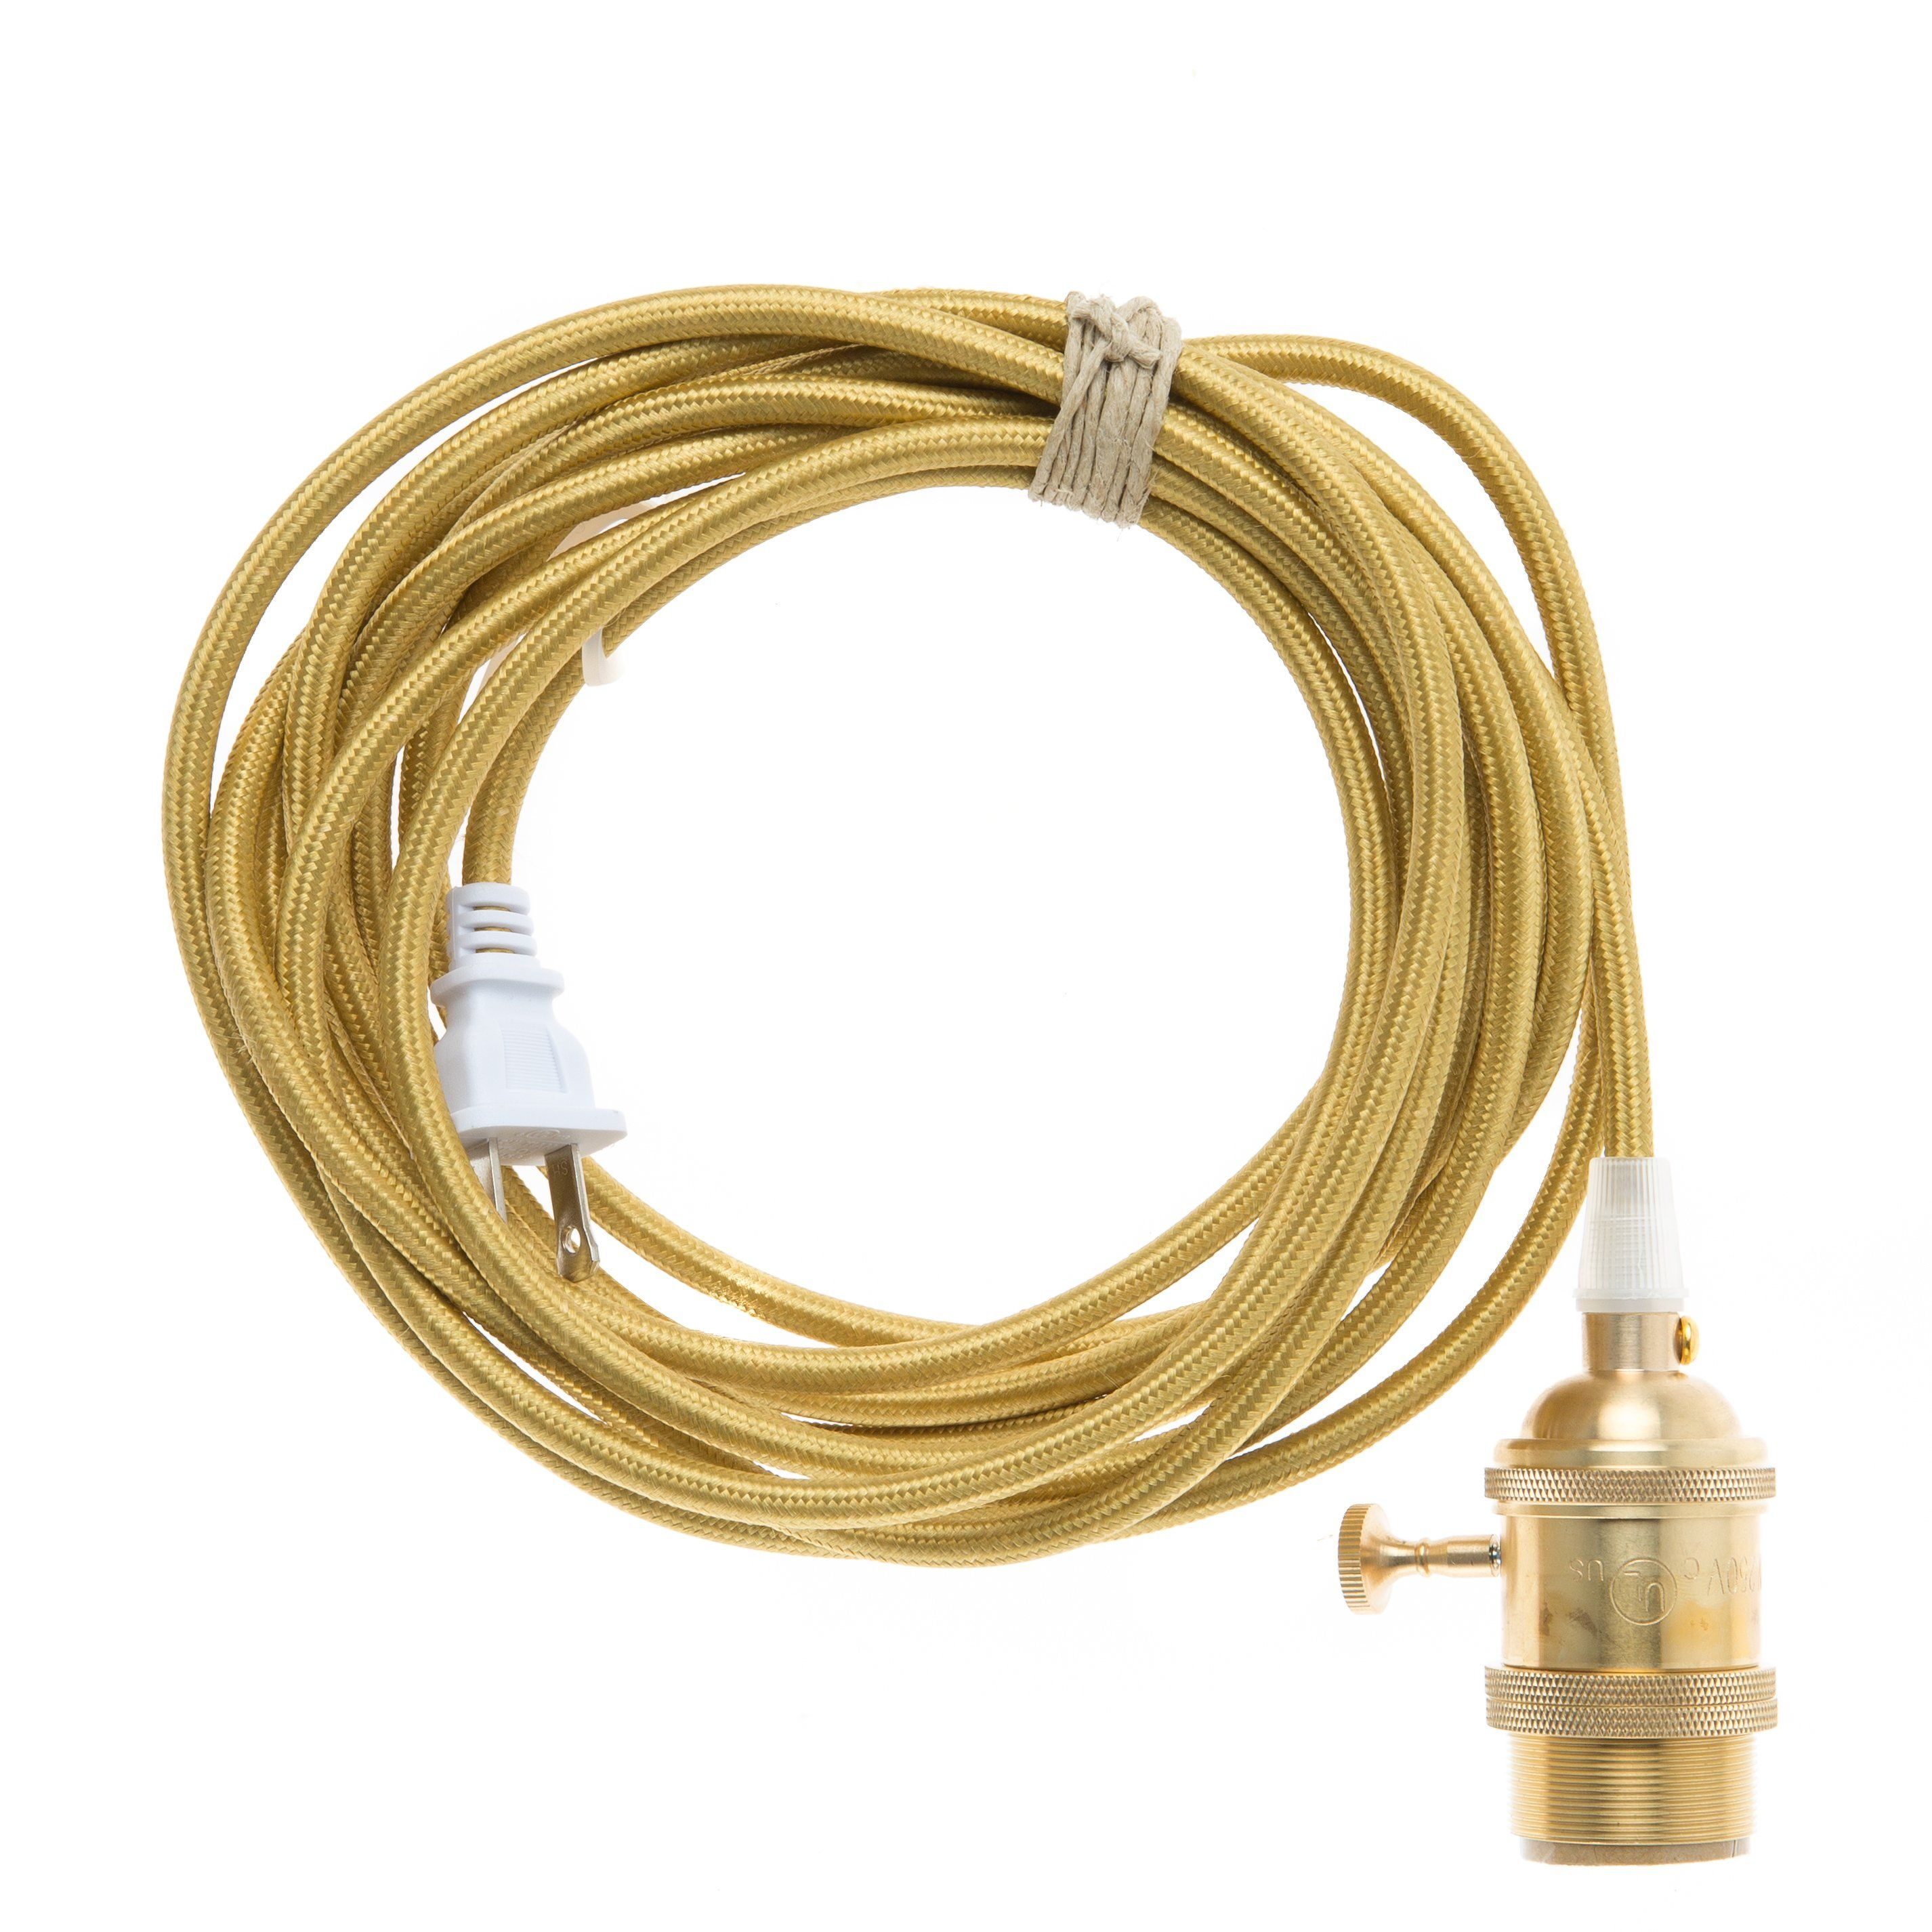 Plug In Pendant Light Cord Set Brass Color Company Wiring A Black To Gold